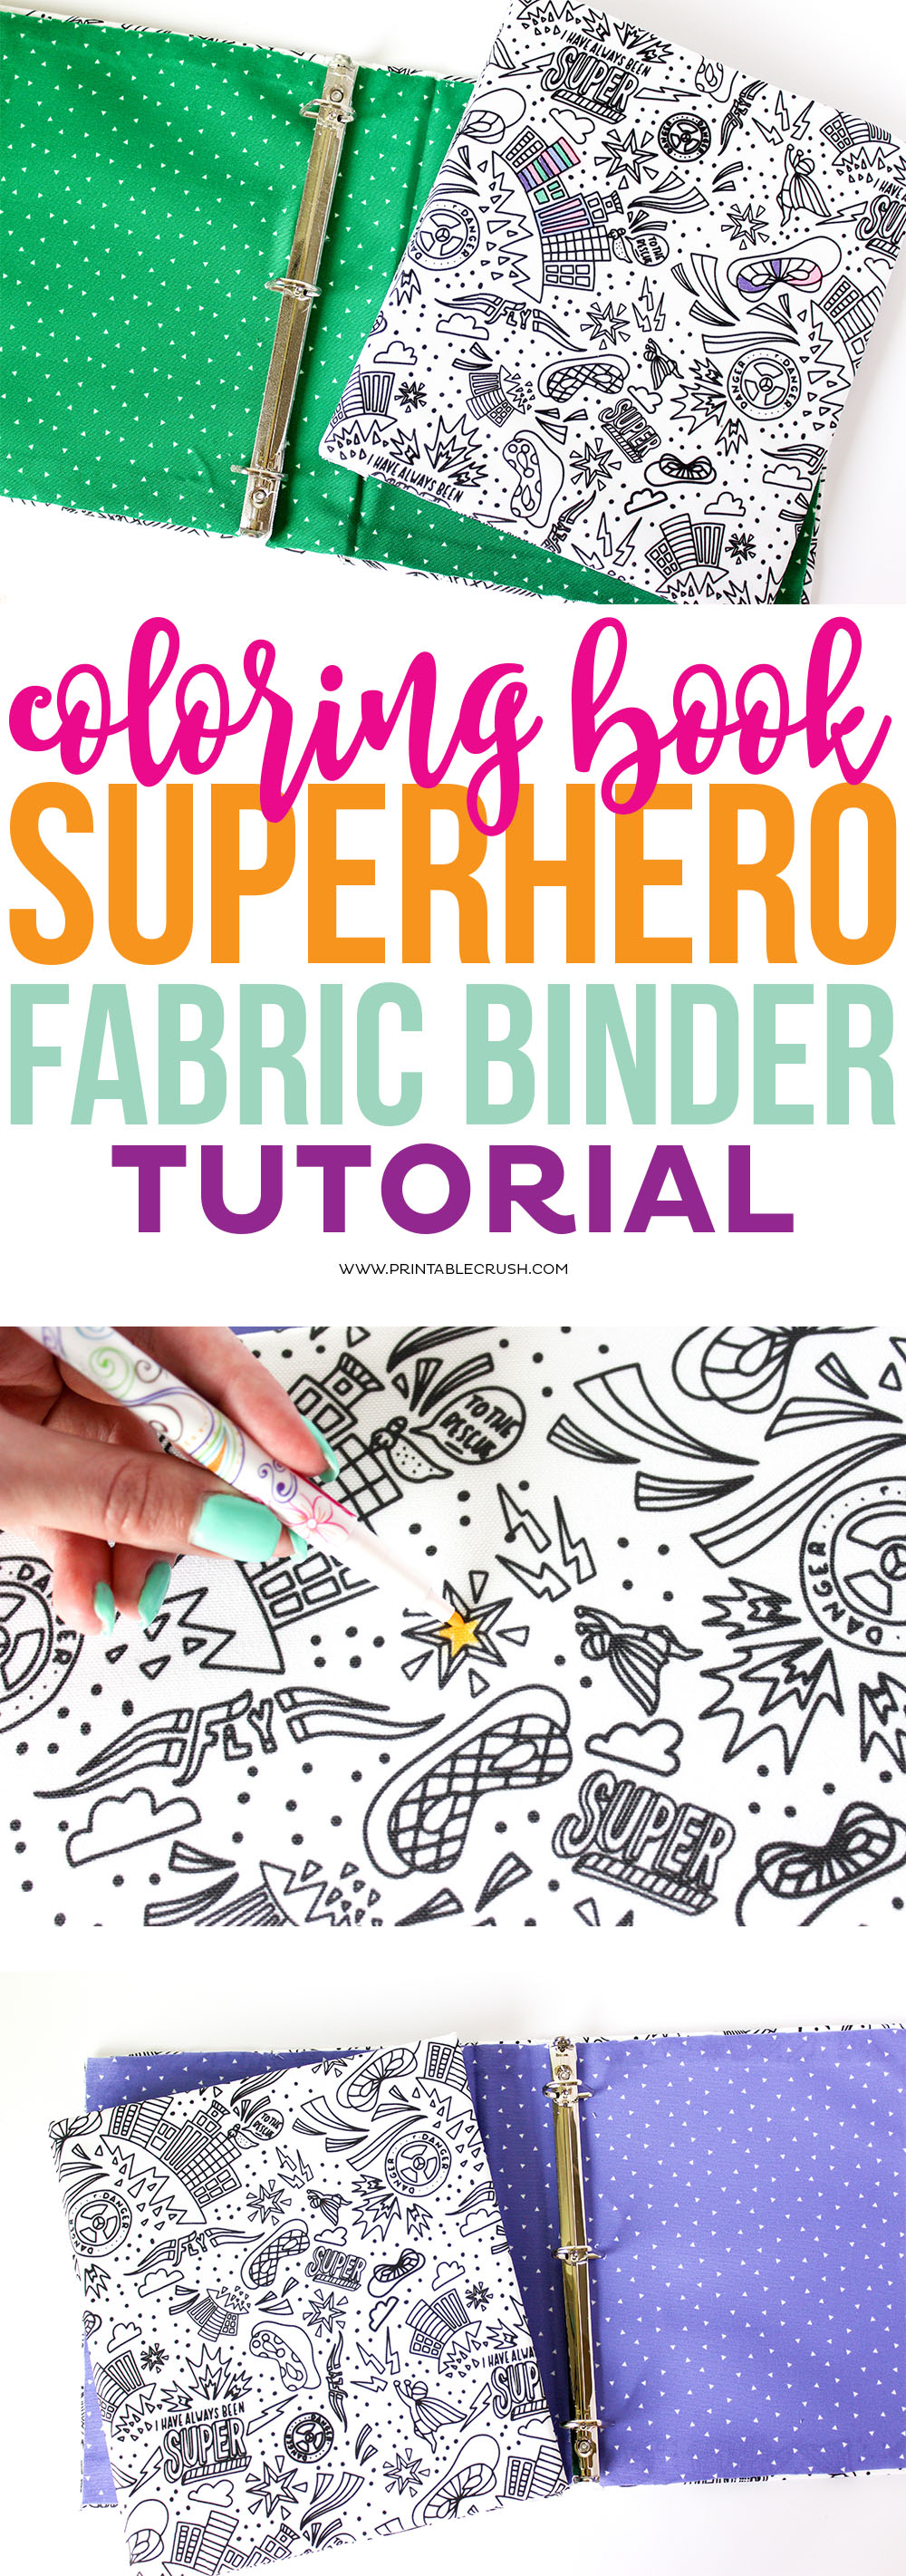 This Coloring Book Superhero Fabric Binder Tutorial is a great back to school project! Your kids will have a fun and unique binder this year.